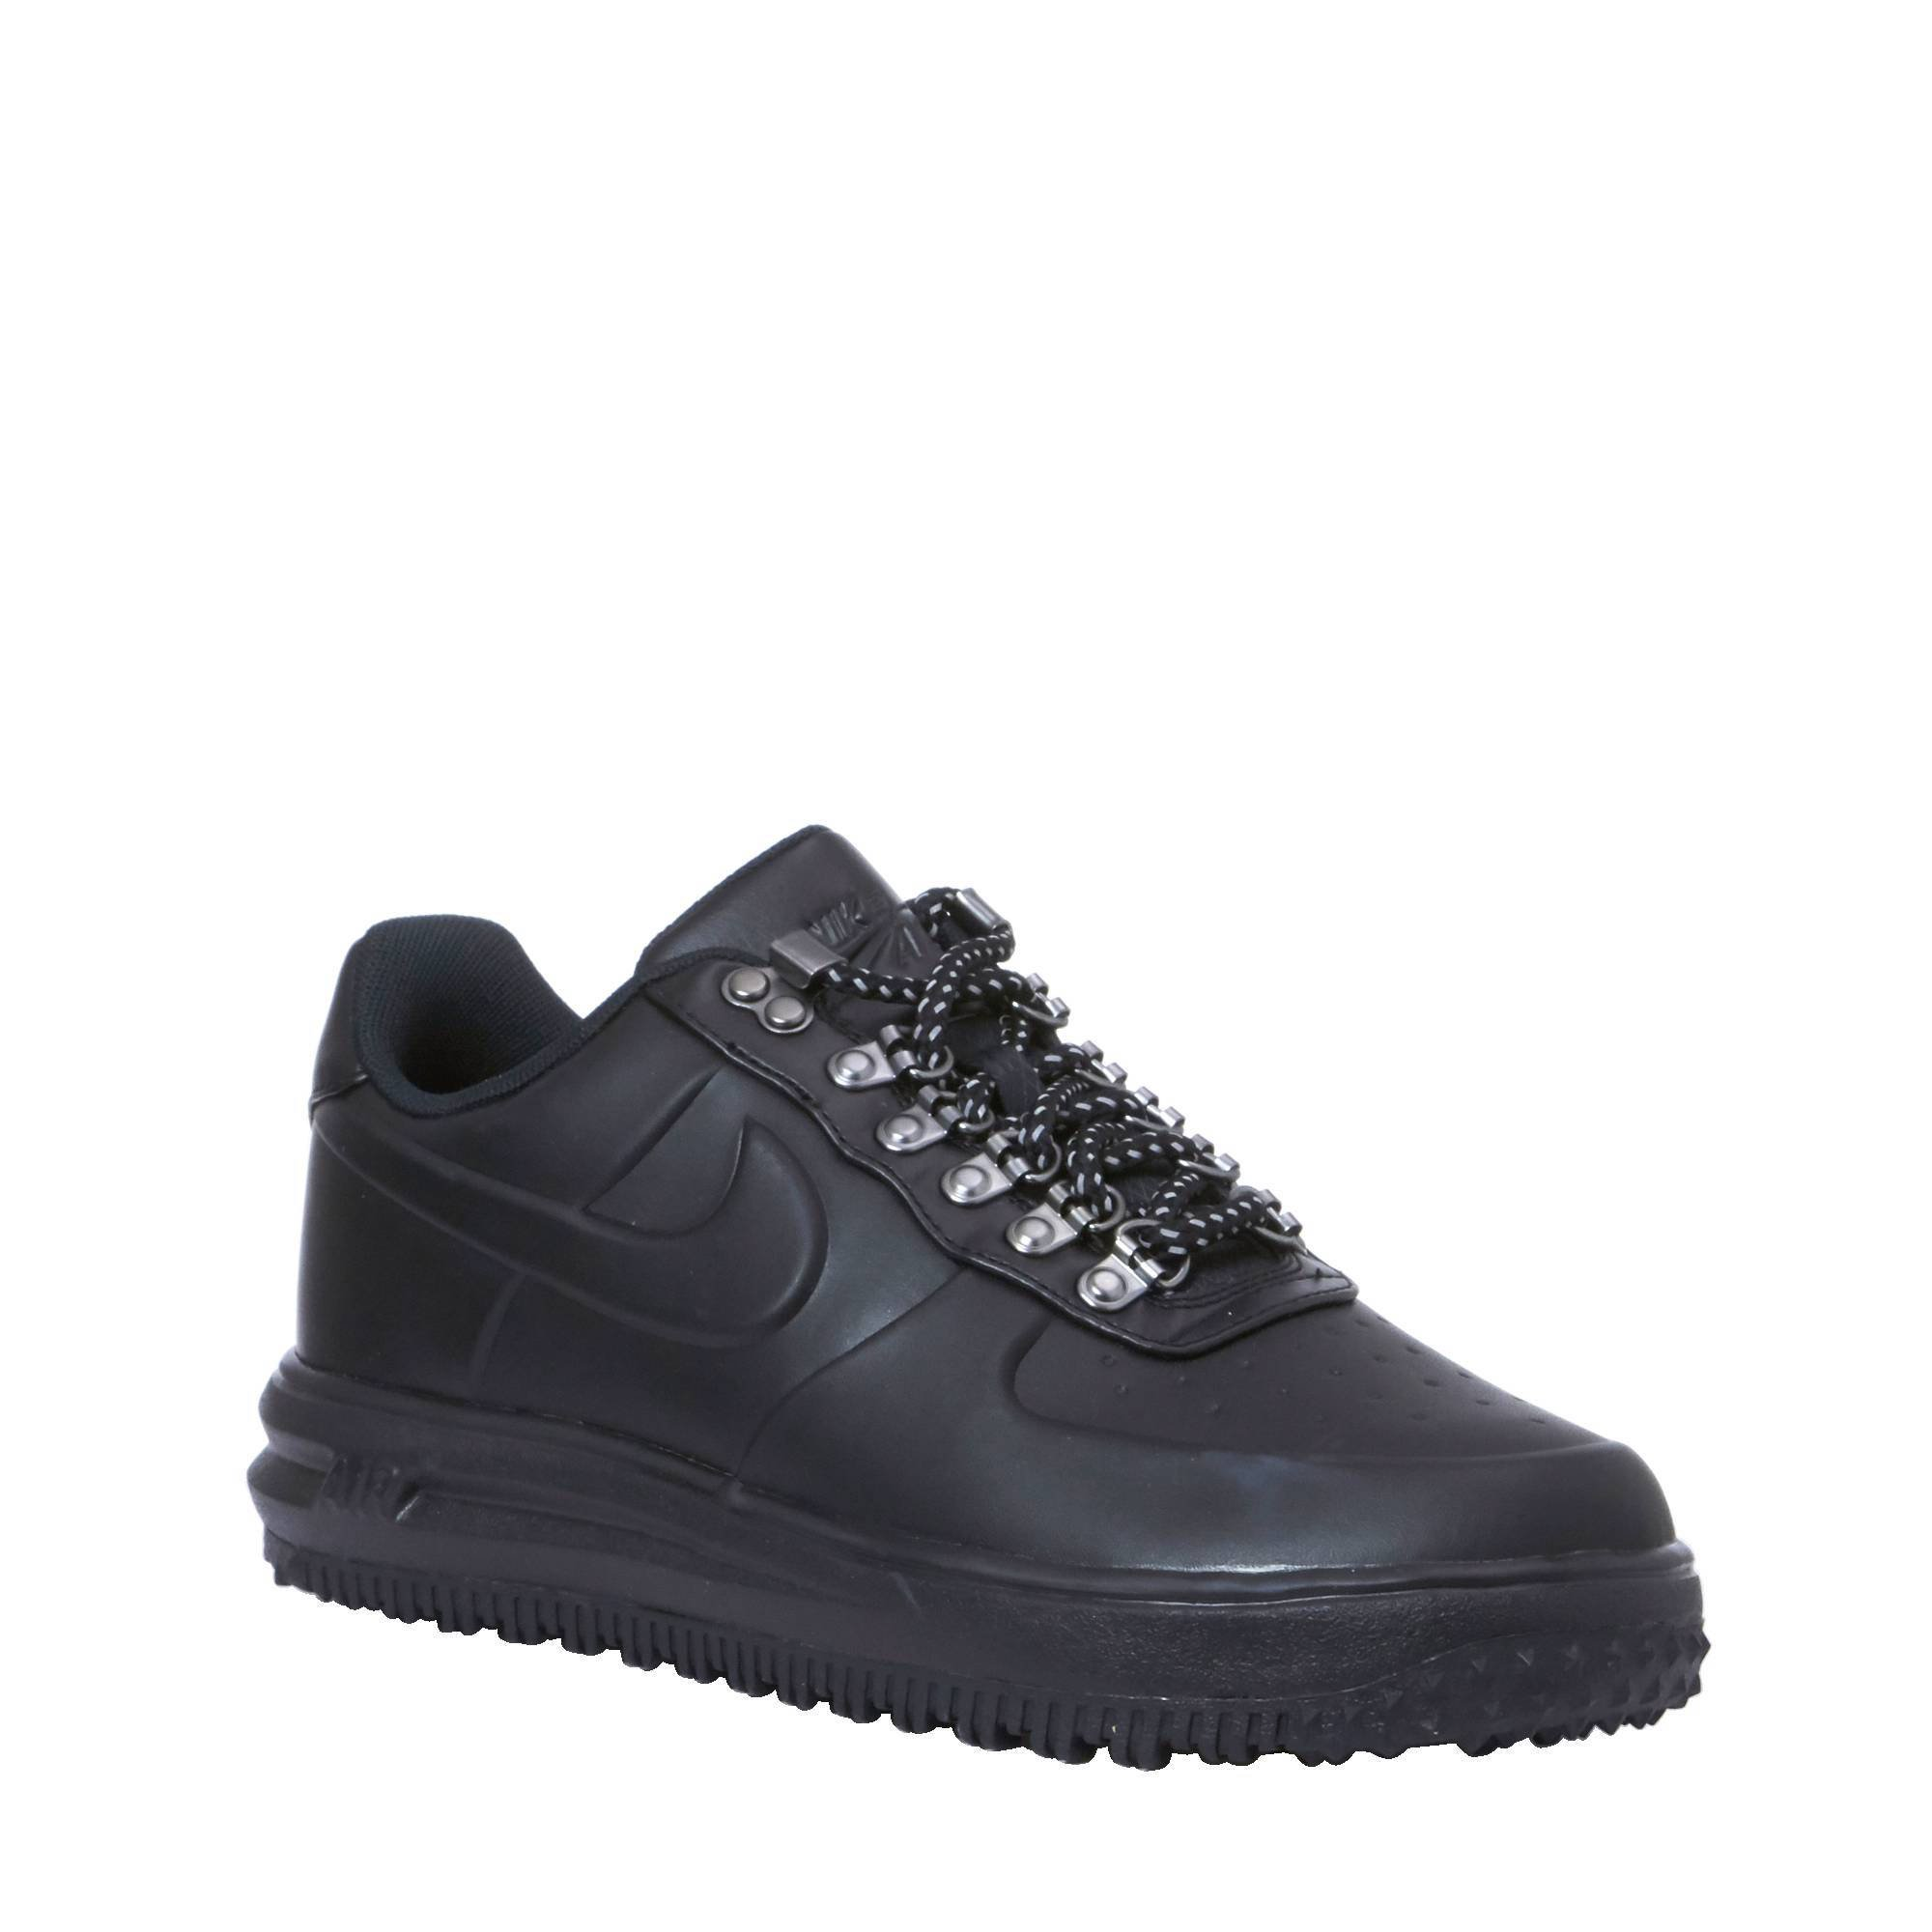 Lunar Force 1 Duckboot Low sneakers